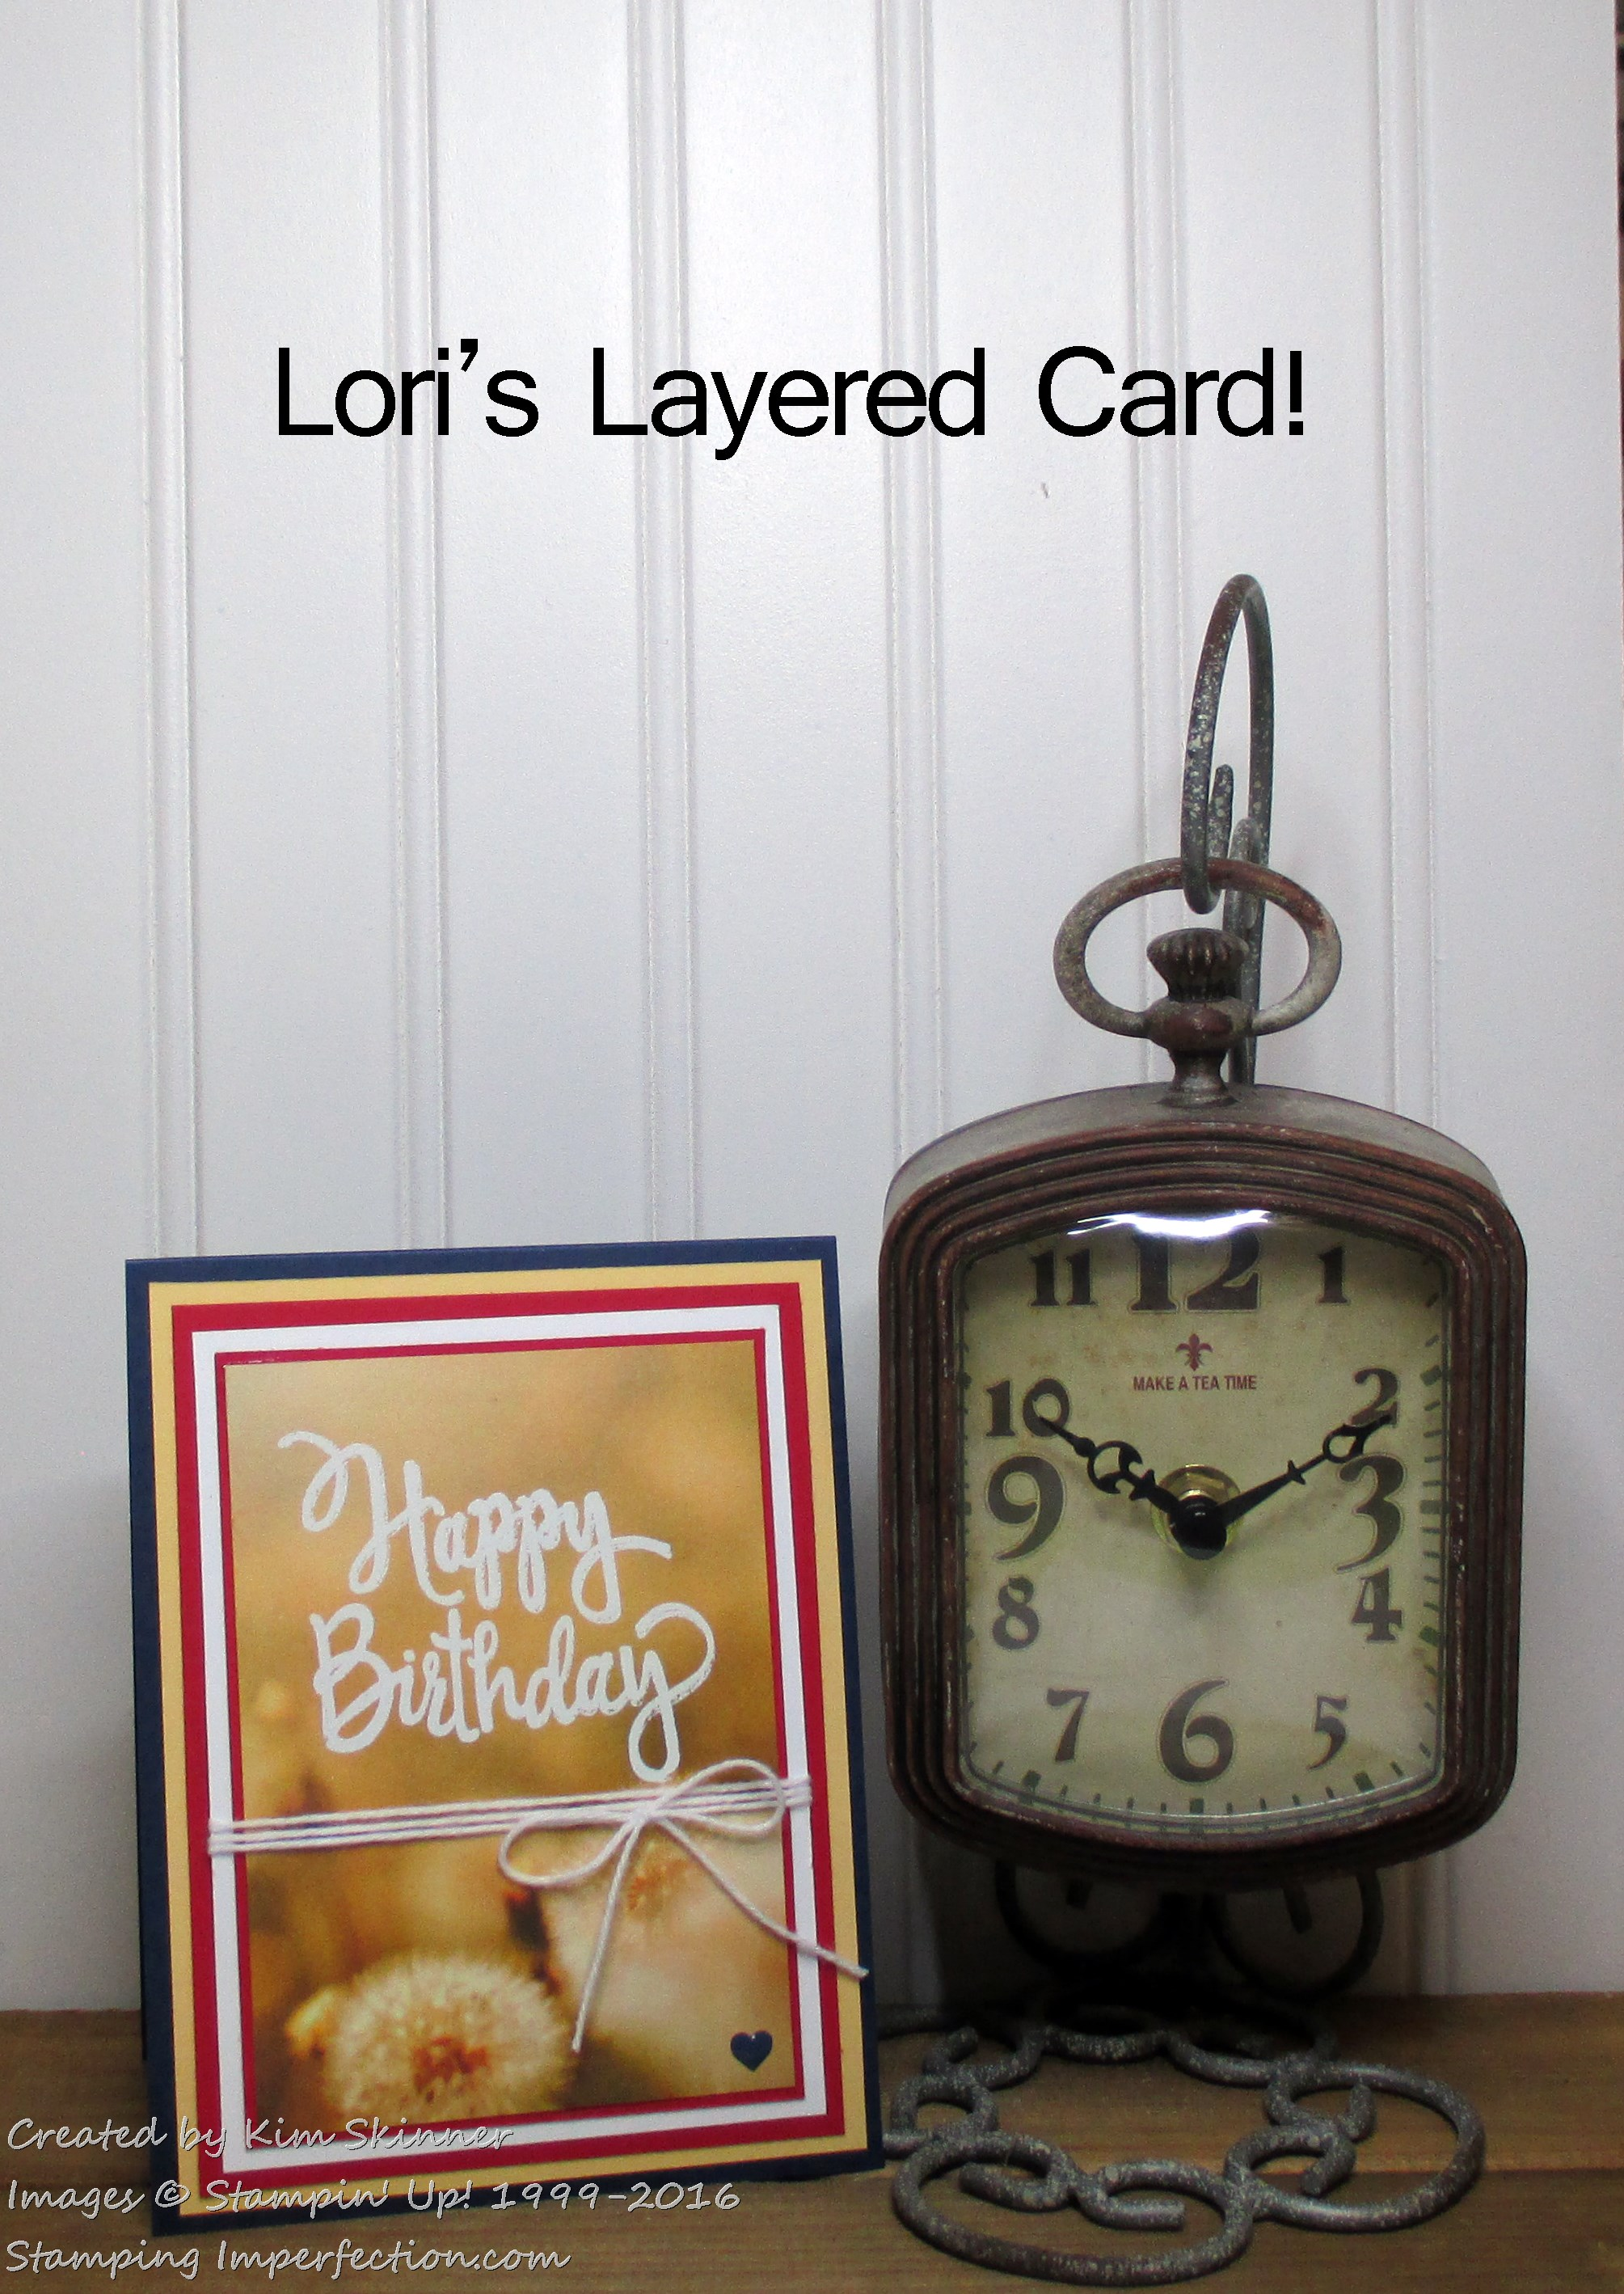 Stamping Imperfection Lori's Layered Card